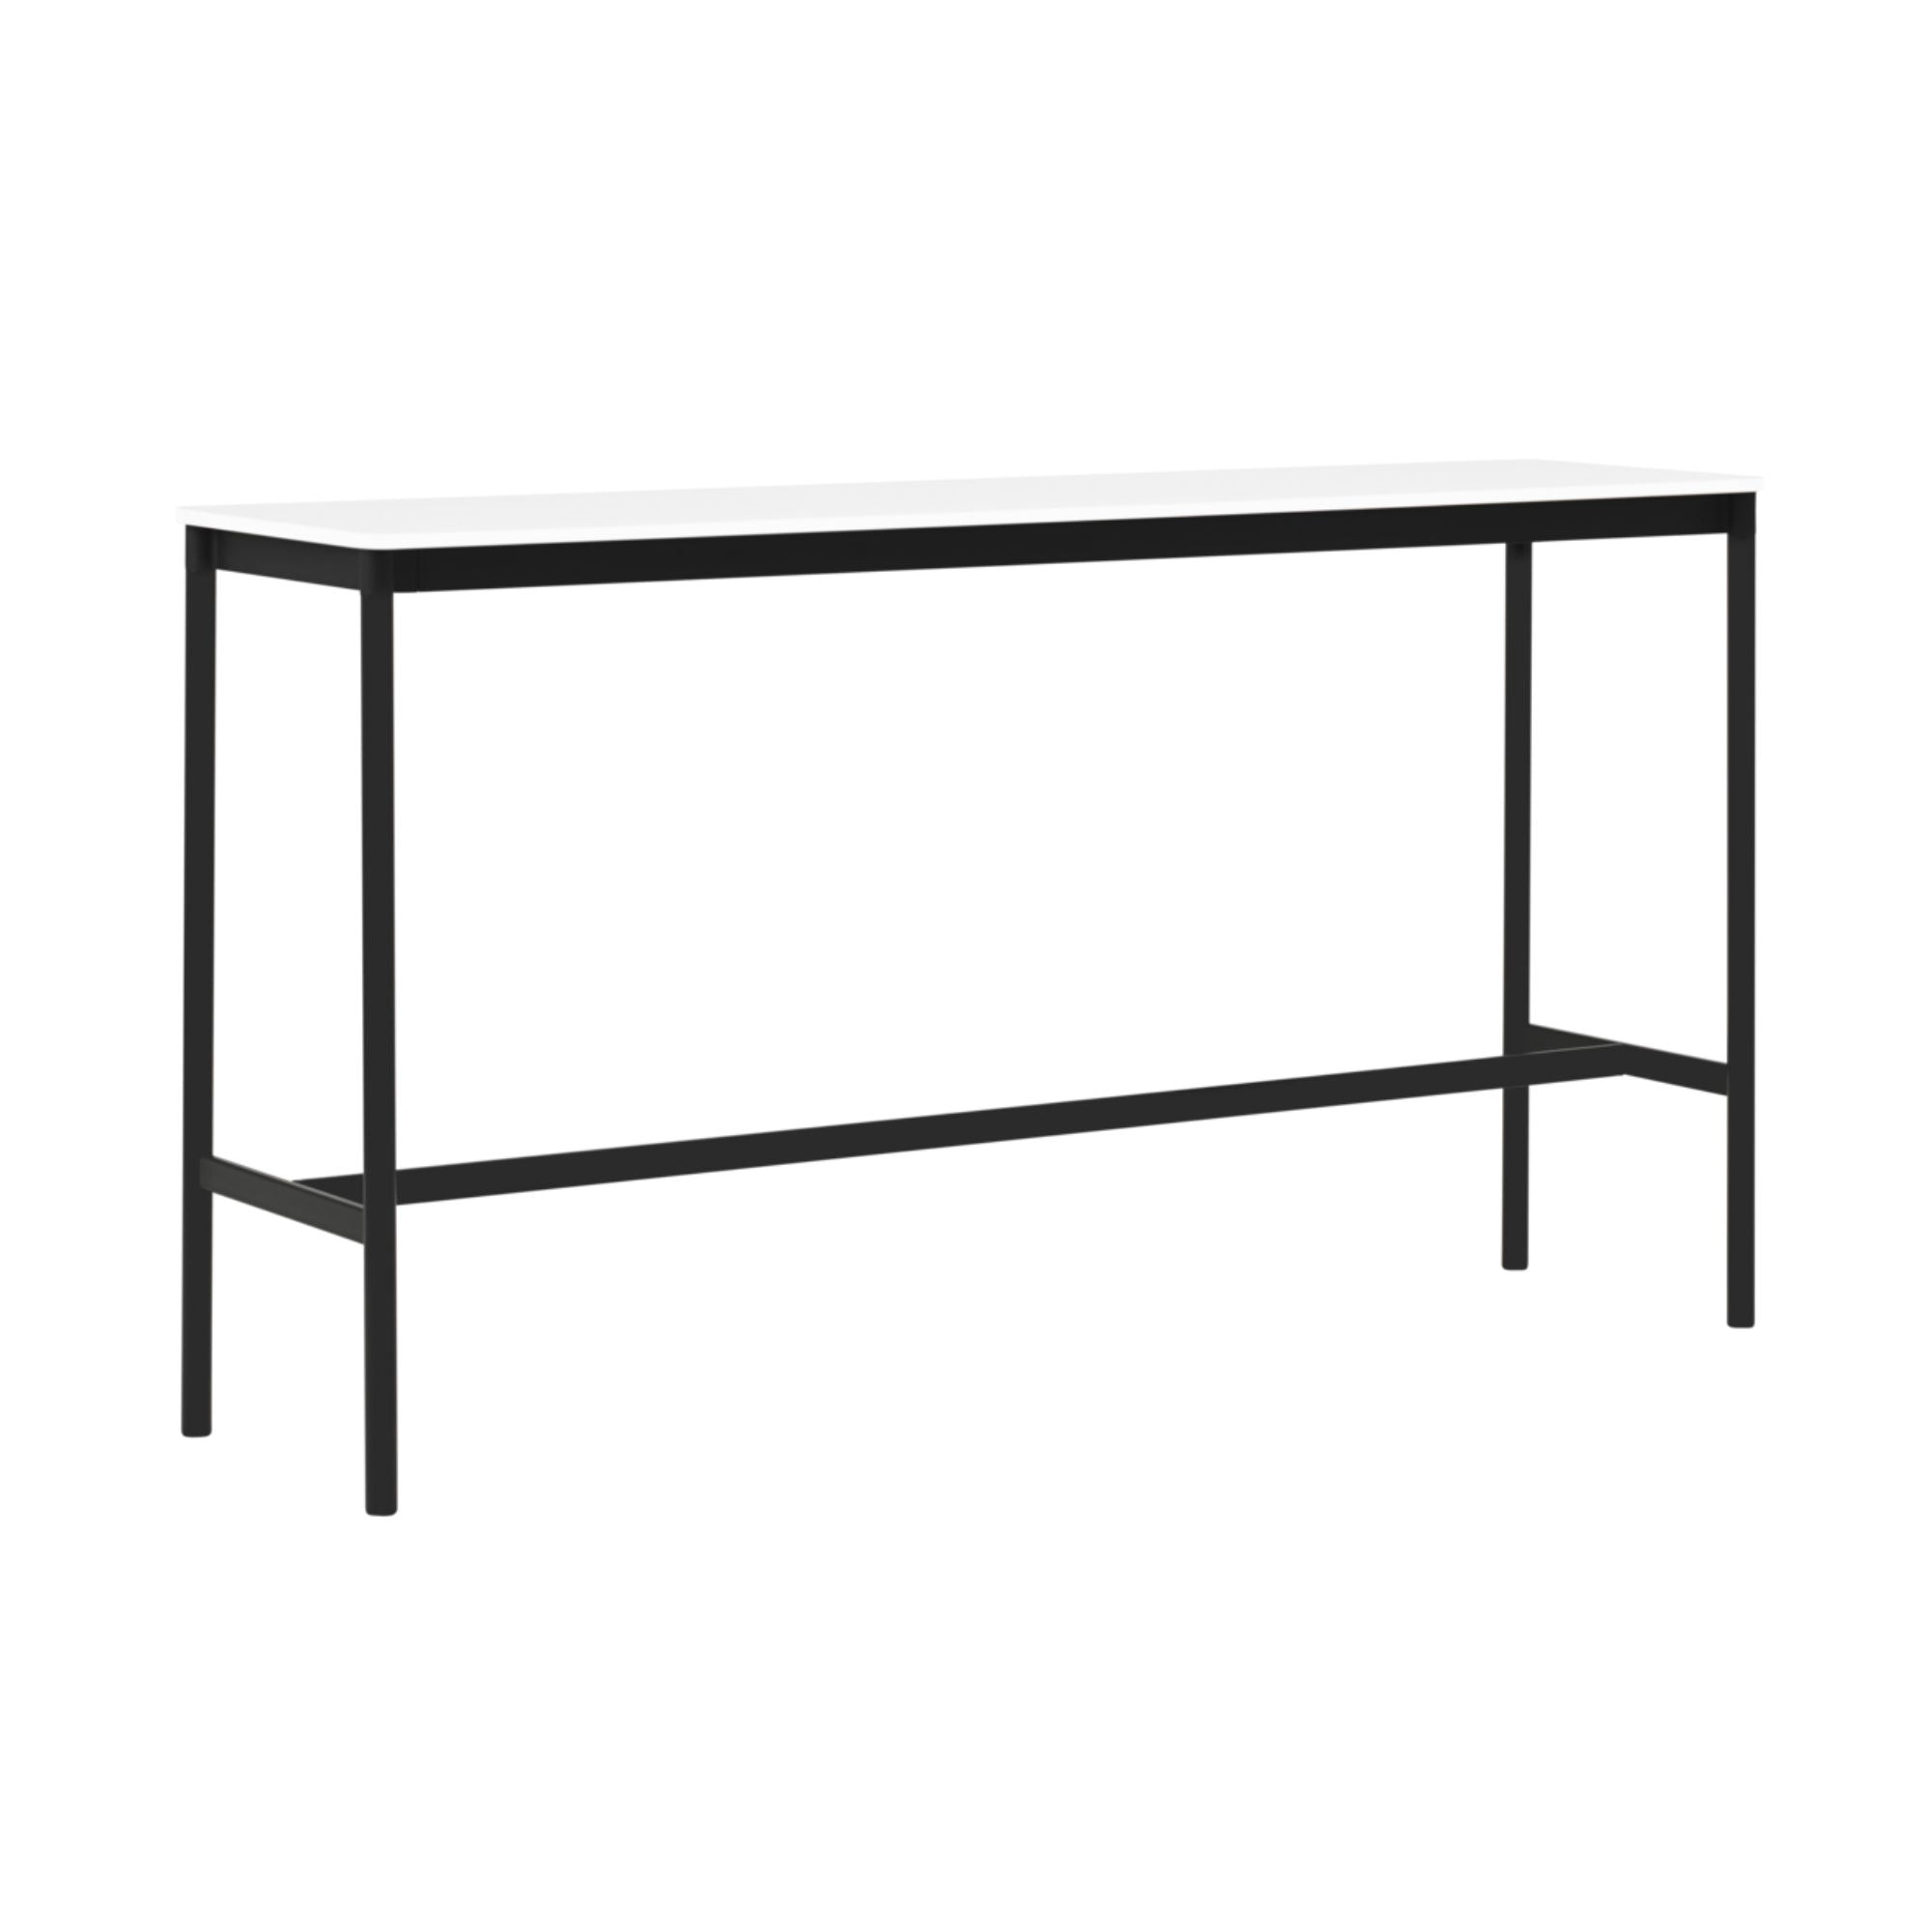 Muuto Base High Table 190x50 h:105cm , White Laminate/White ABS/Black